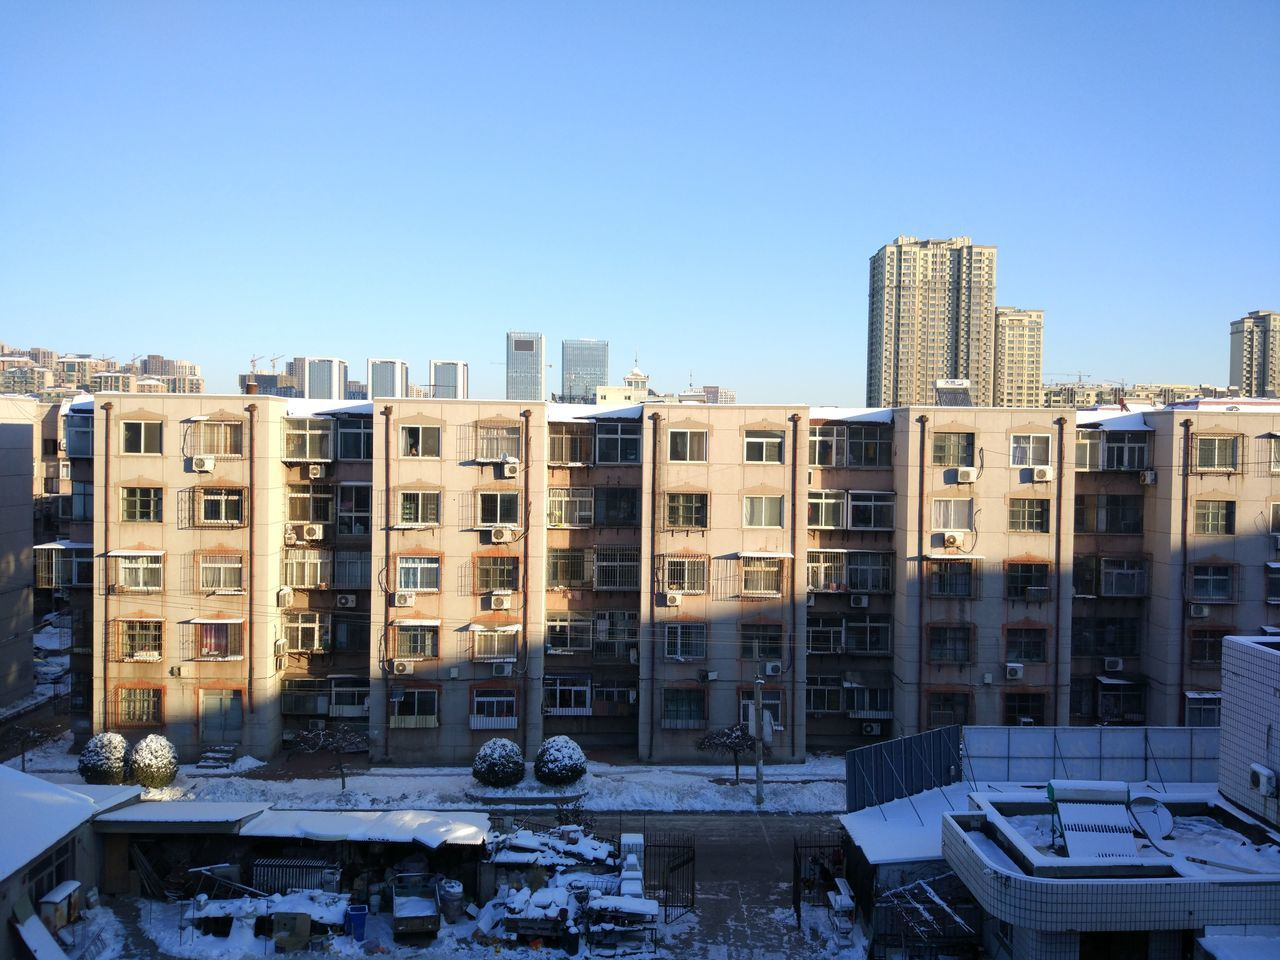 building exterior, architecture, built structure, clear sky, day, outdoors, cold temperature, winter, snow, city, no people, cityscape, skyscraper, sky